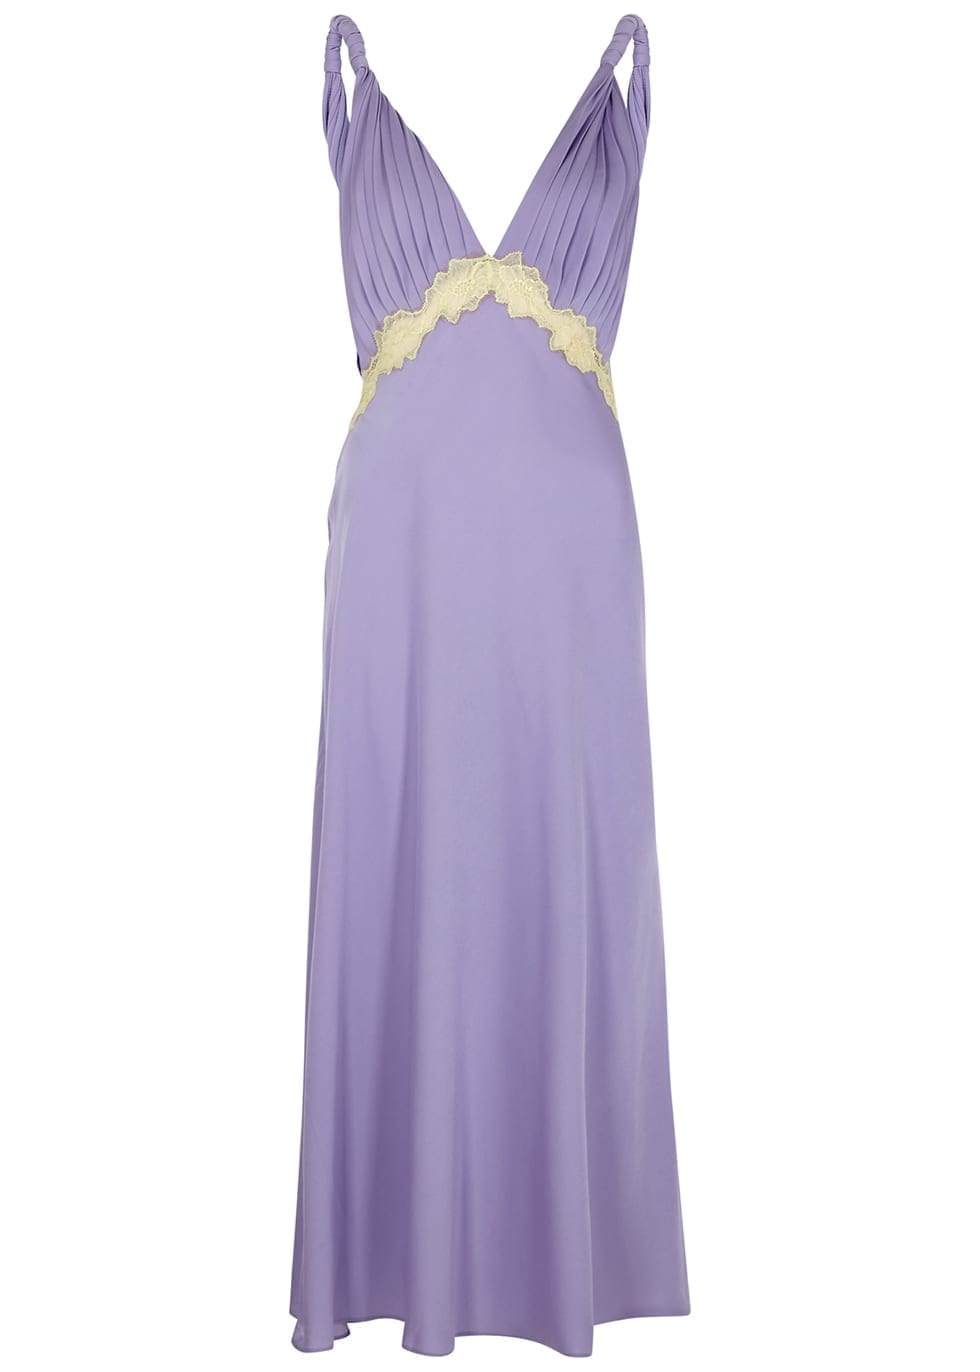 JONATHAN SIMKHAI Kiara Lilac Lace-trimmed Satin Dress